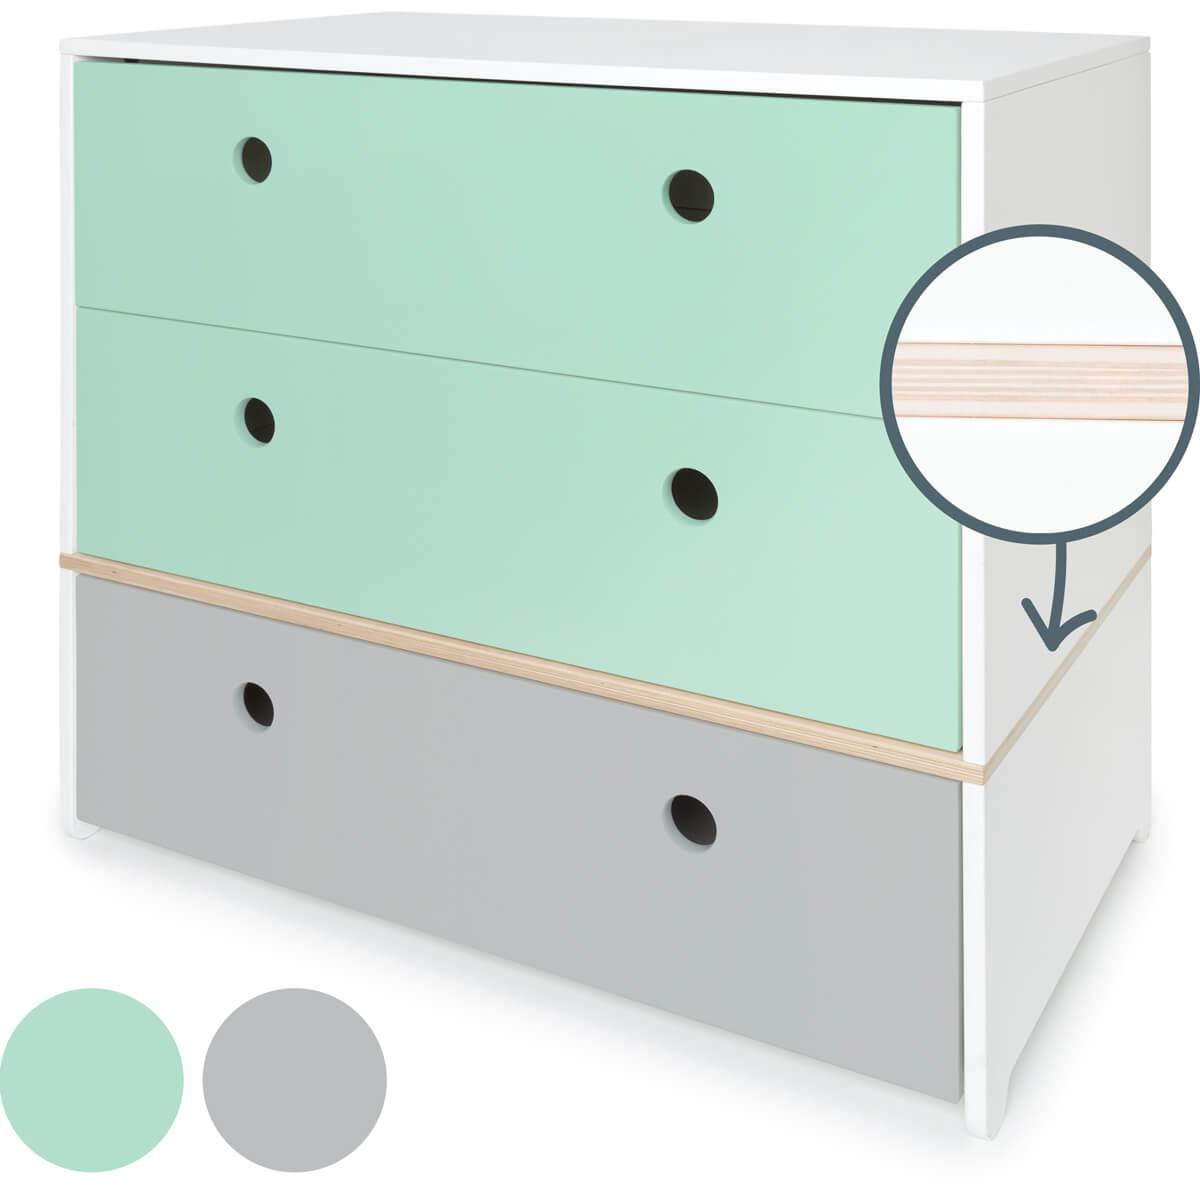 Commode 3 tiroirs COLORFLEX façades tiroirs mint-mint-pearl grey